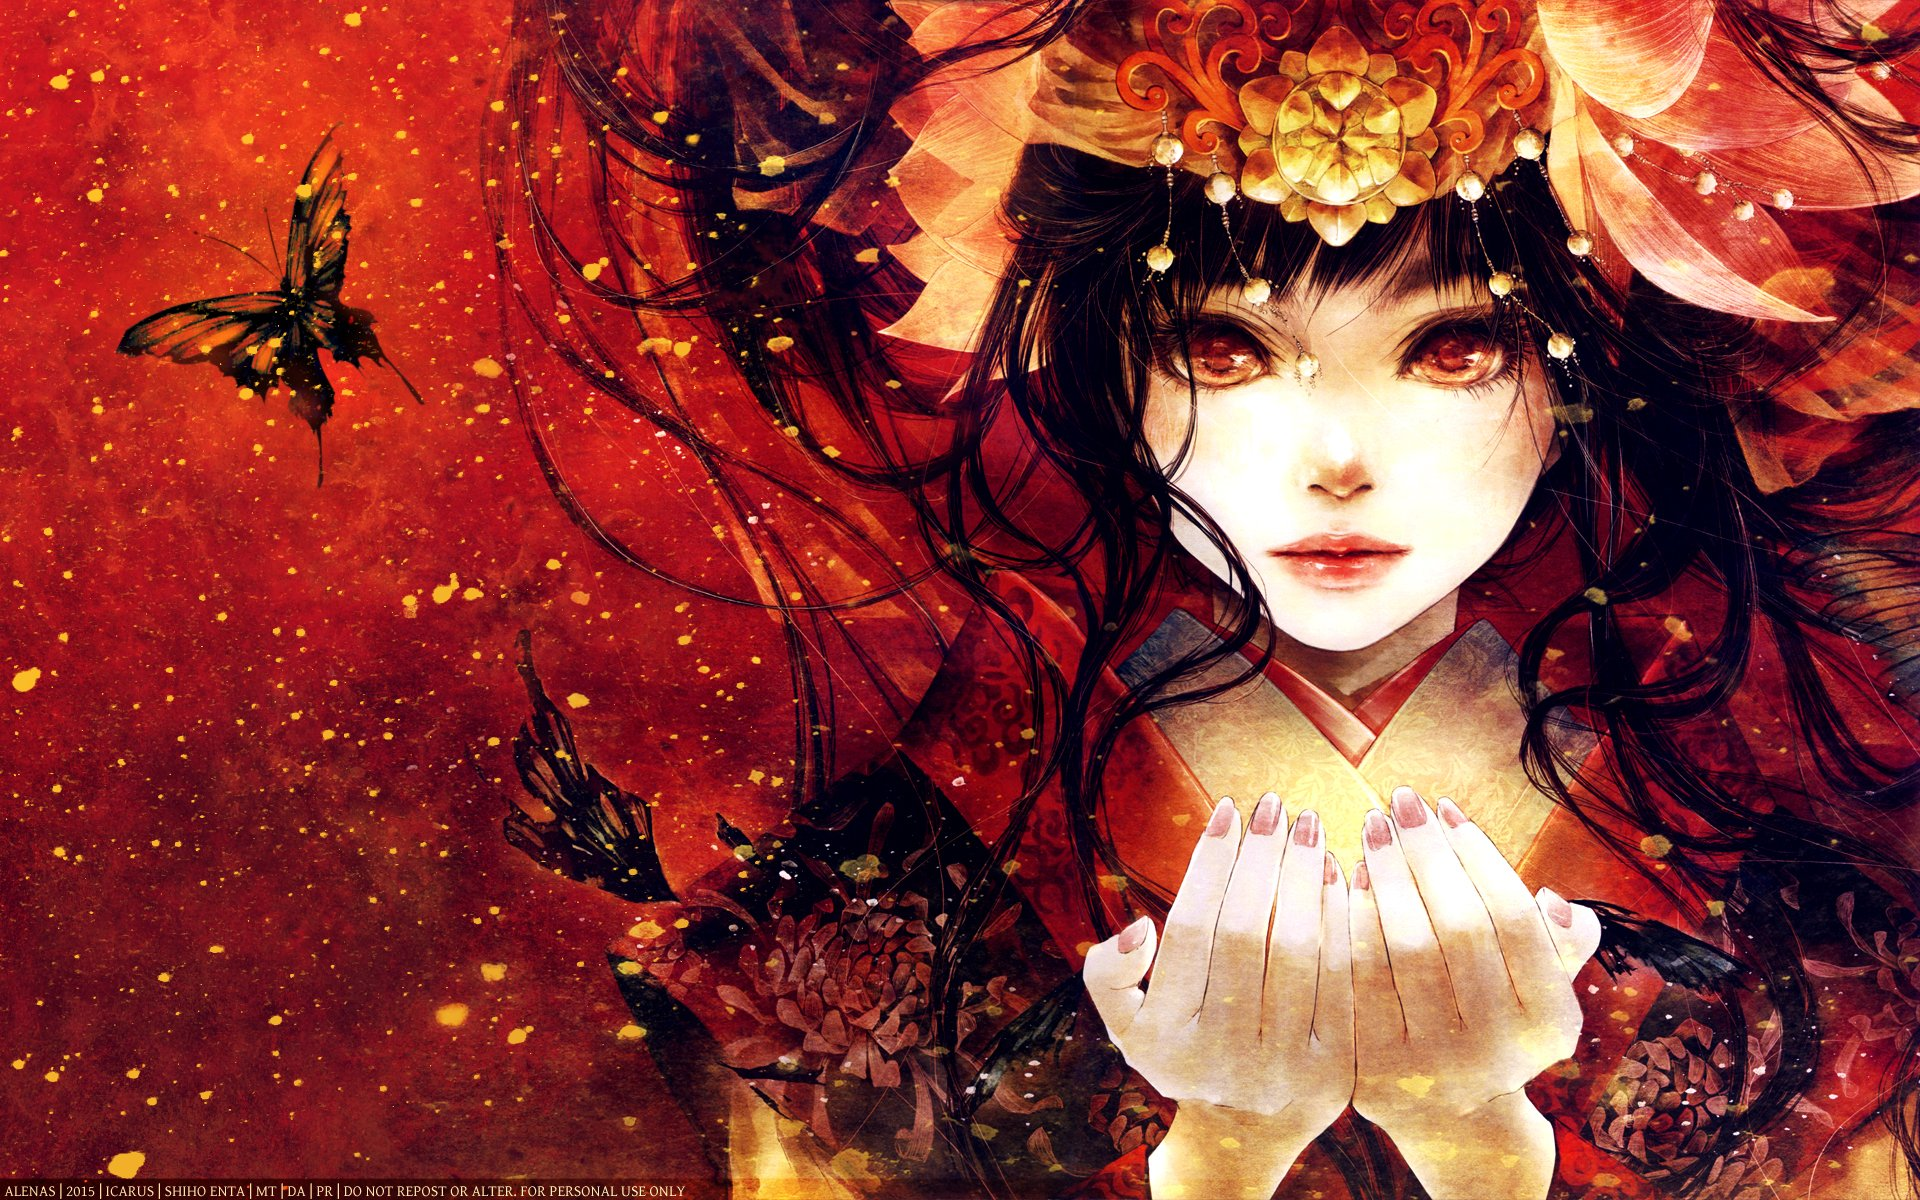 Lol Wallpapers Hd 1980x1080 Anime Girl And Butterfly Full Hd Wallpaper And Background